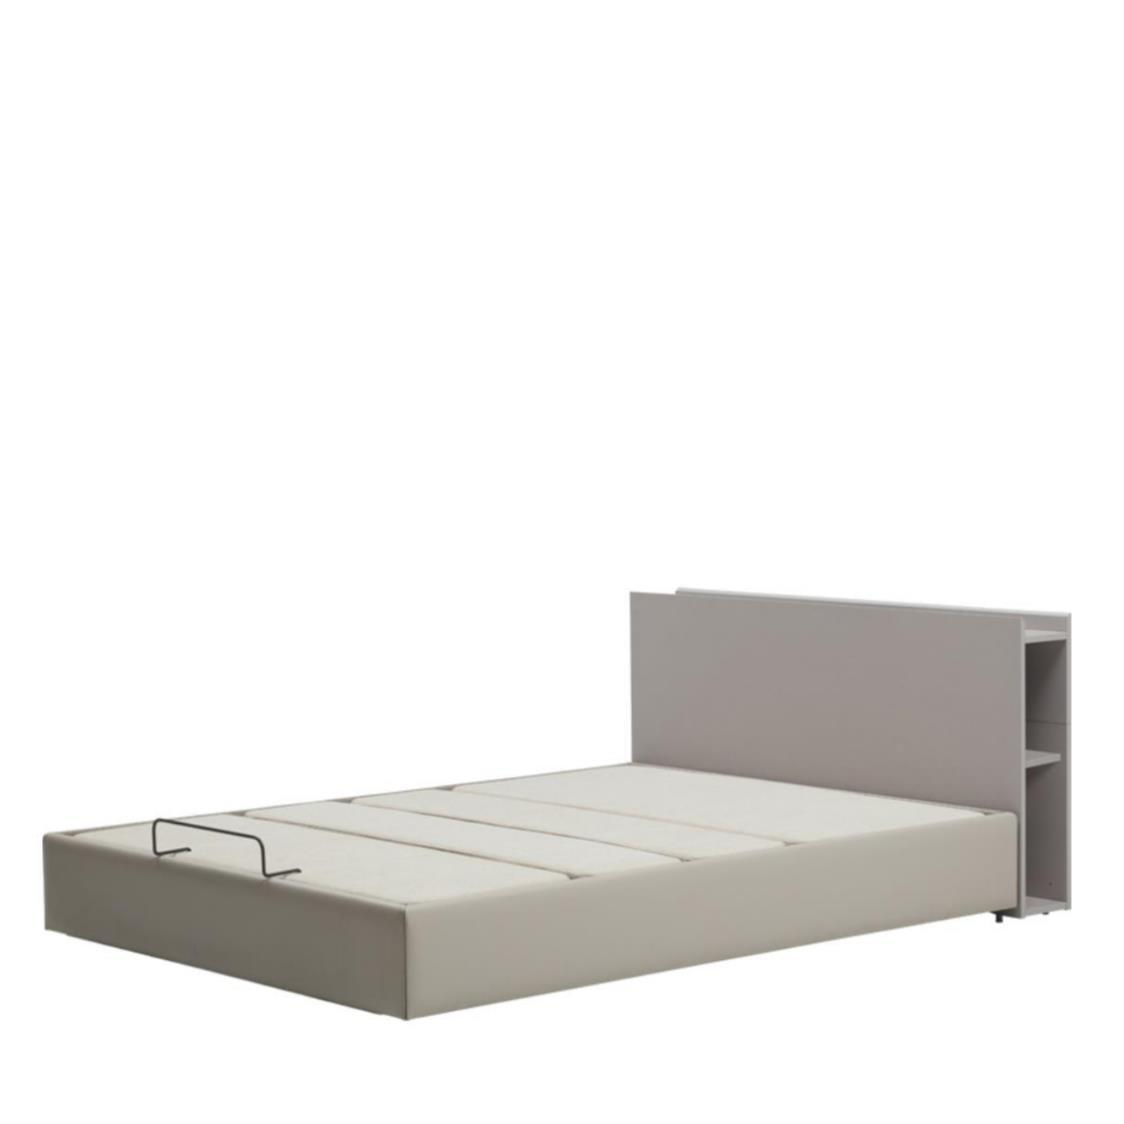 Argian 1500W Motion Bed With USB Queen GYM Grey Matt